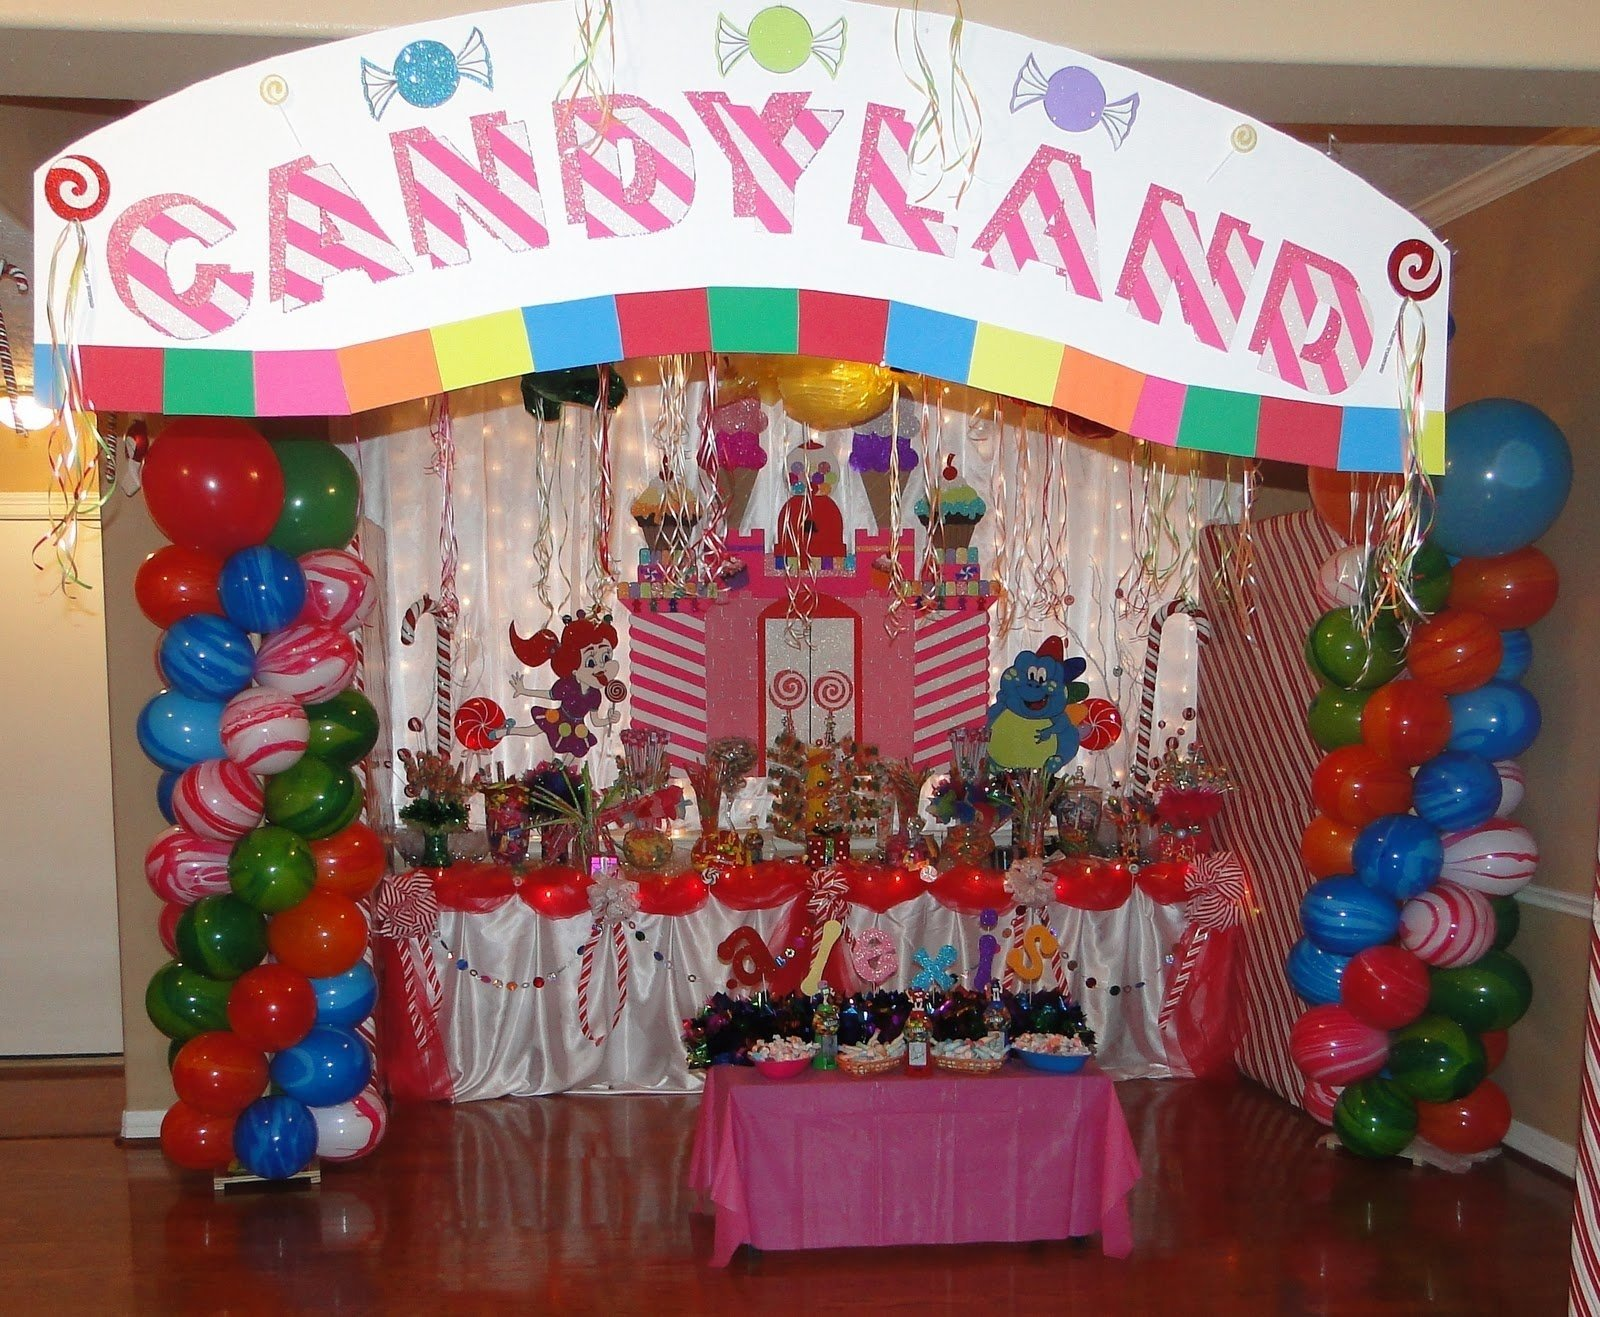 10 Famous Candy Themed Birthday Party Ideas candyland birthday party all in home decor ideas candyland party 2020